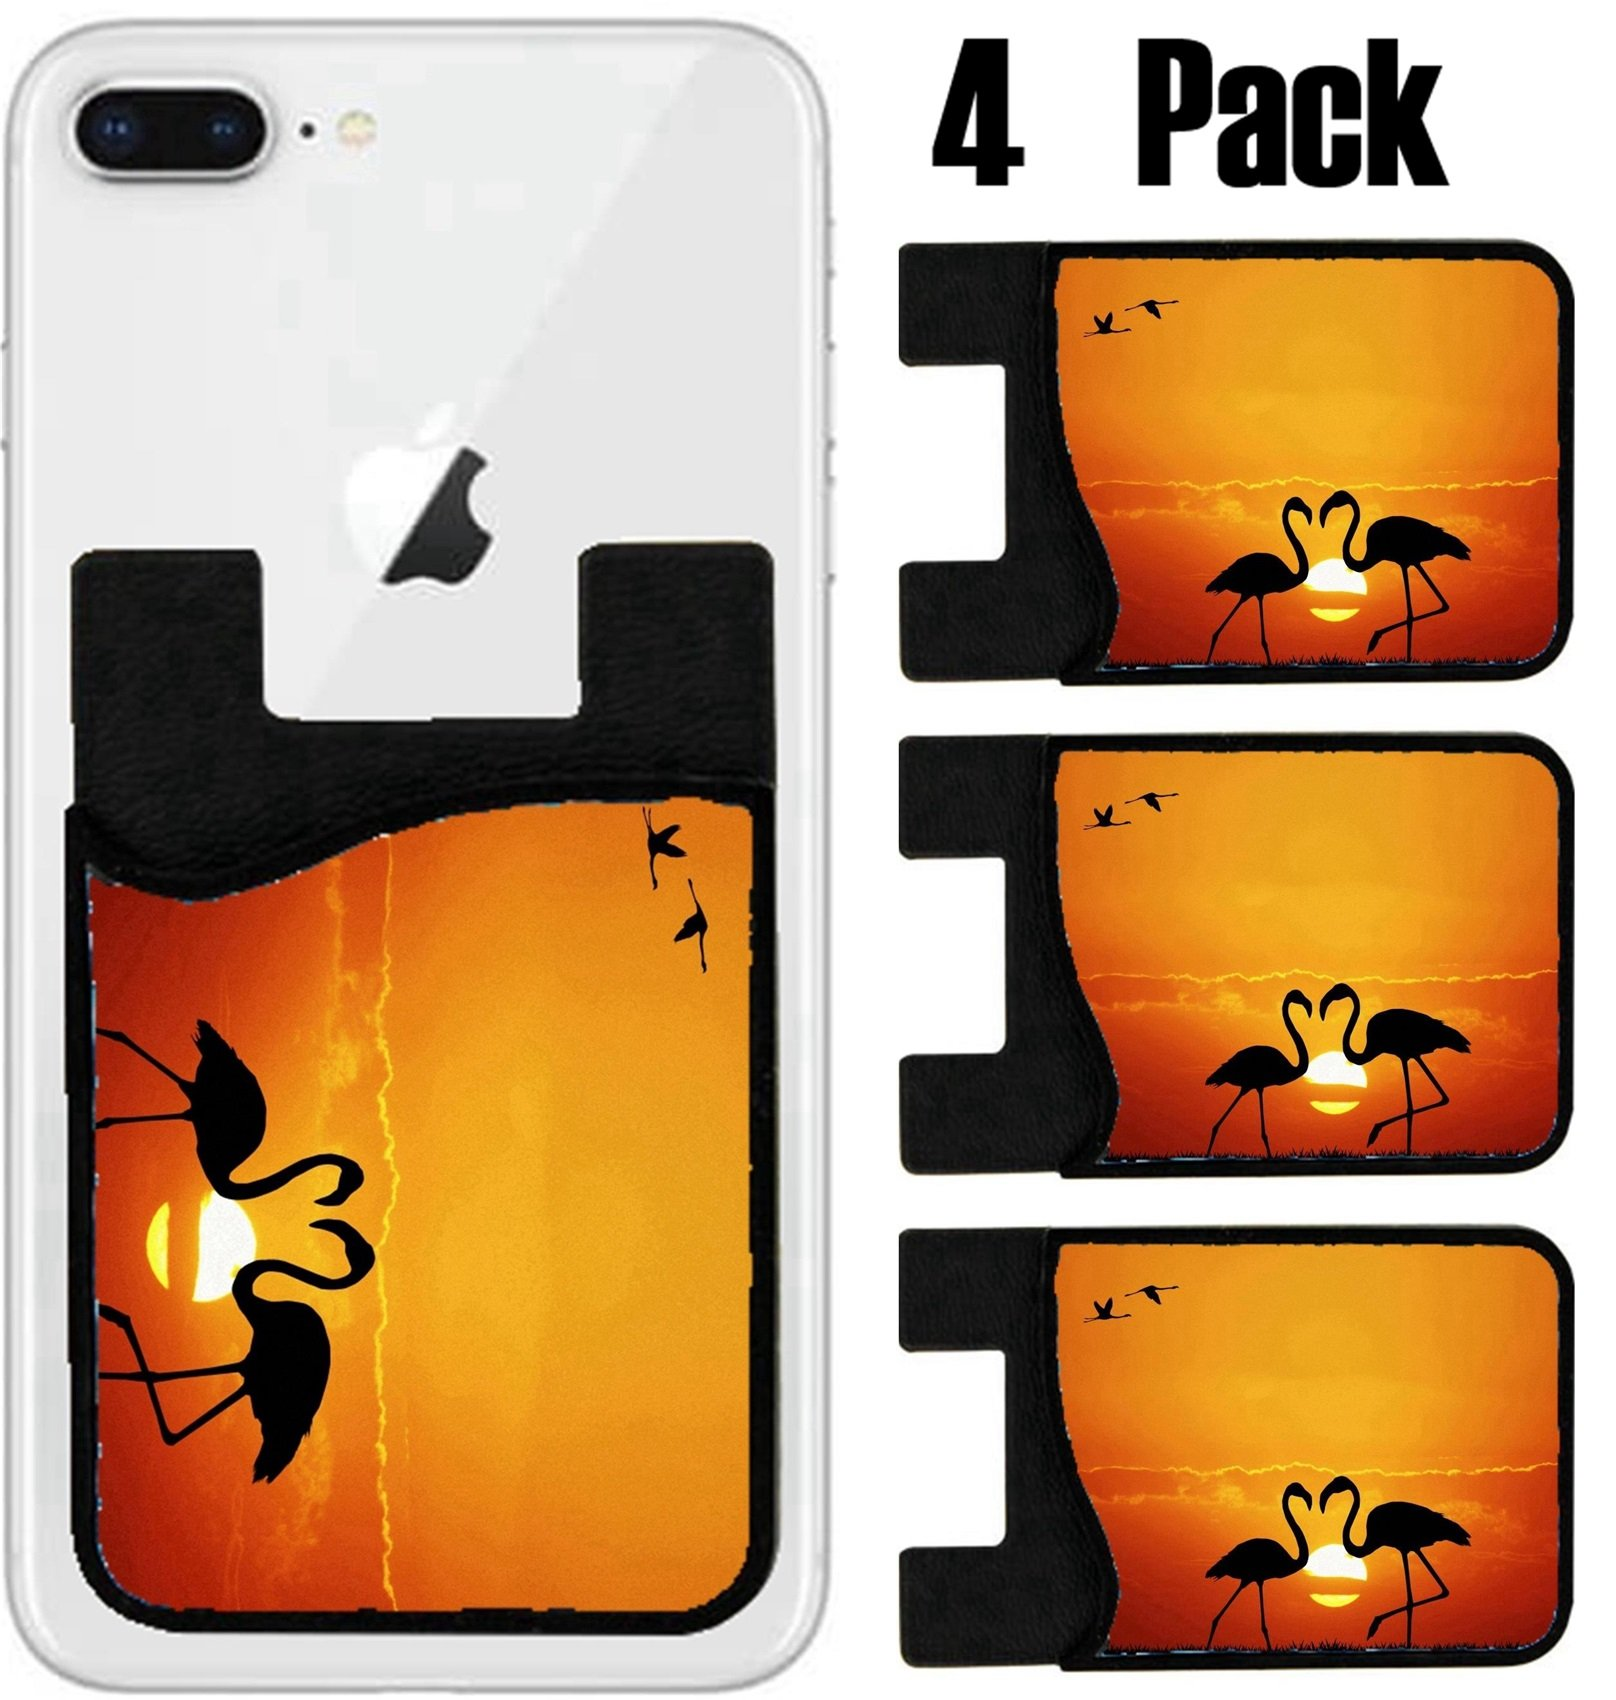 MSD Phone Card holder, sleeve/wallet for iPhone Samsung Android and all smartphones with removable microfiber screen cleaner Silicone card Caddy(4 Pack) IMAGE ID: 28429526 pink flamingos at sunset